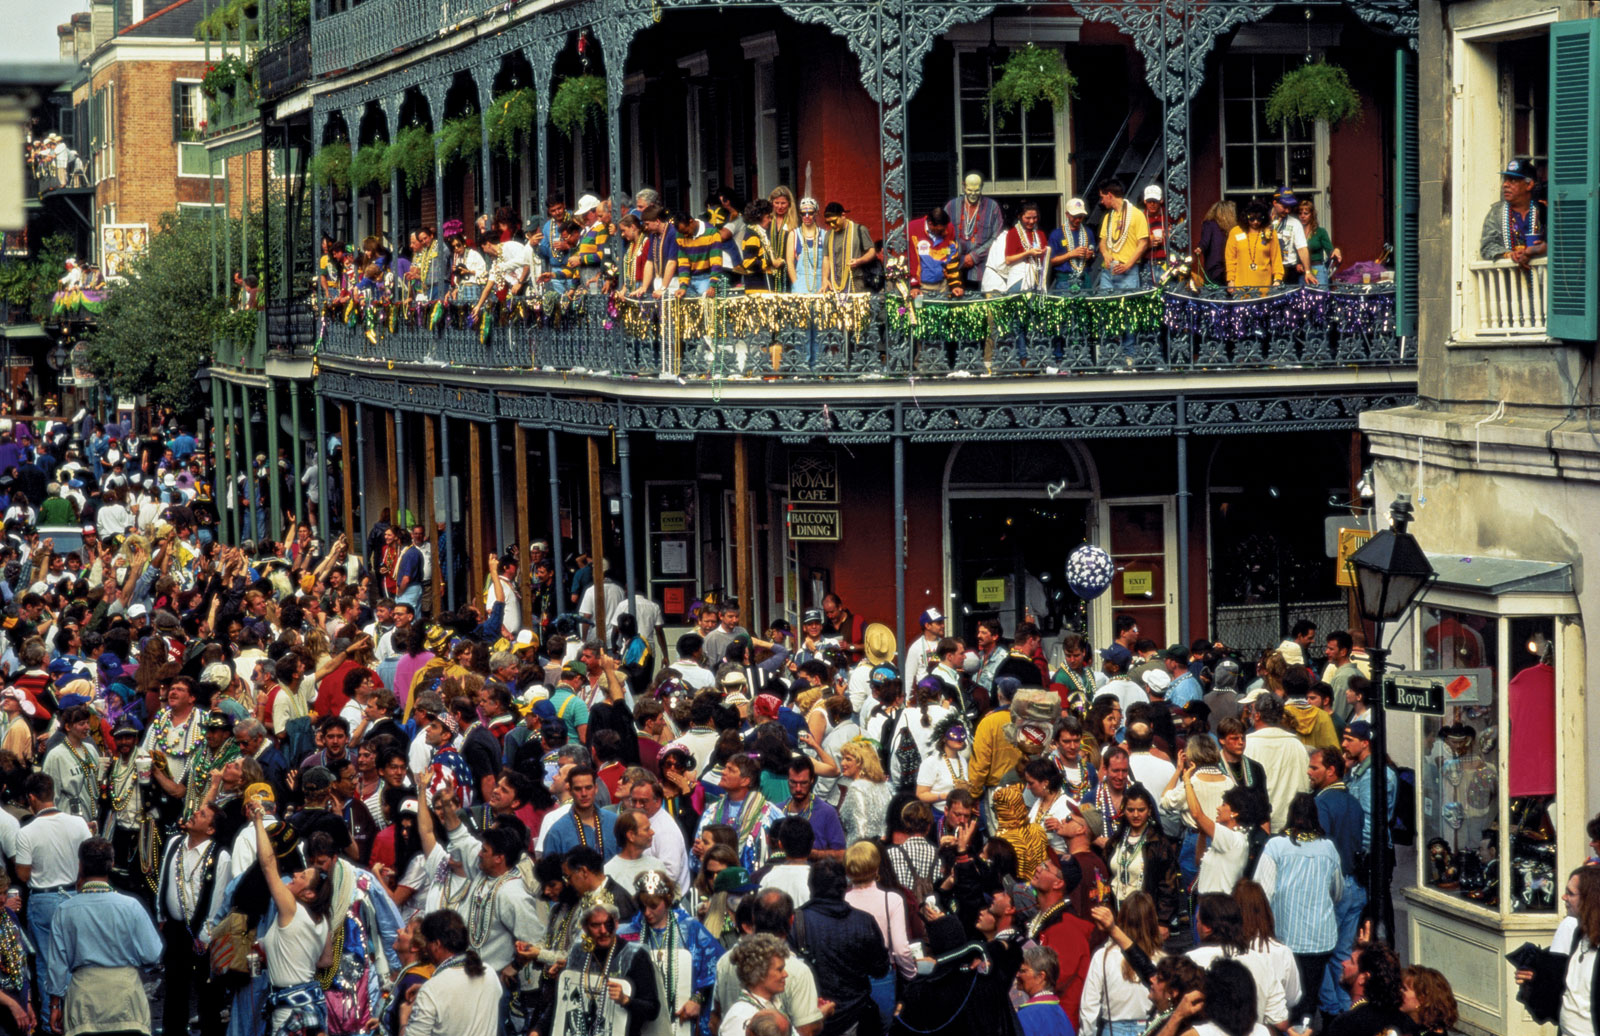 new orleans and mardi gras Fat tuesday, which falls on feb 13 this year, marks the end of the mardi gras festival in new orleans it is the culmination of the week-long festival — the last.